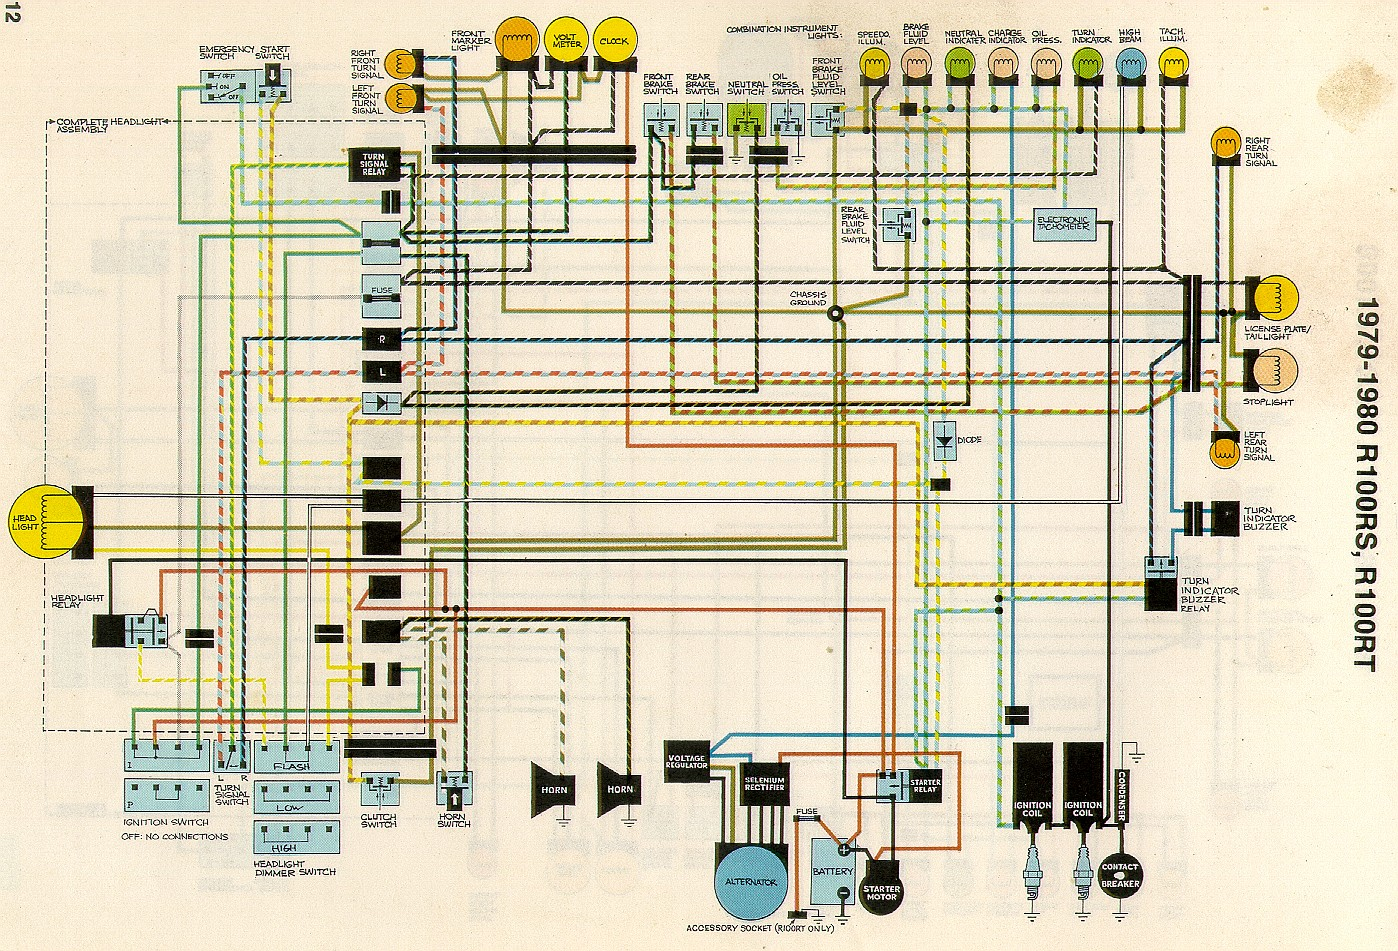 bmw r75 7 wiring diagram 5 united / articles :: wiring diagrams bmw r100 7 wiring diagram